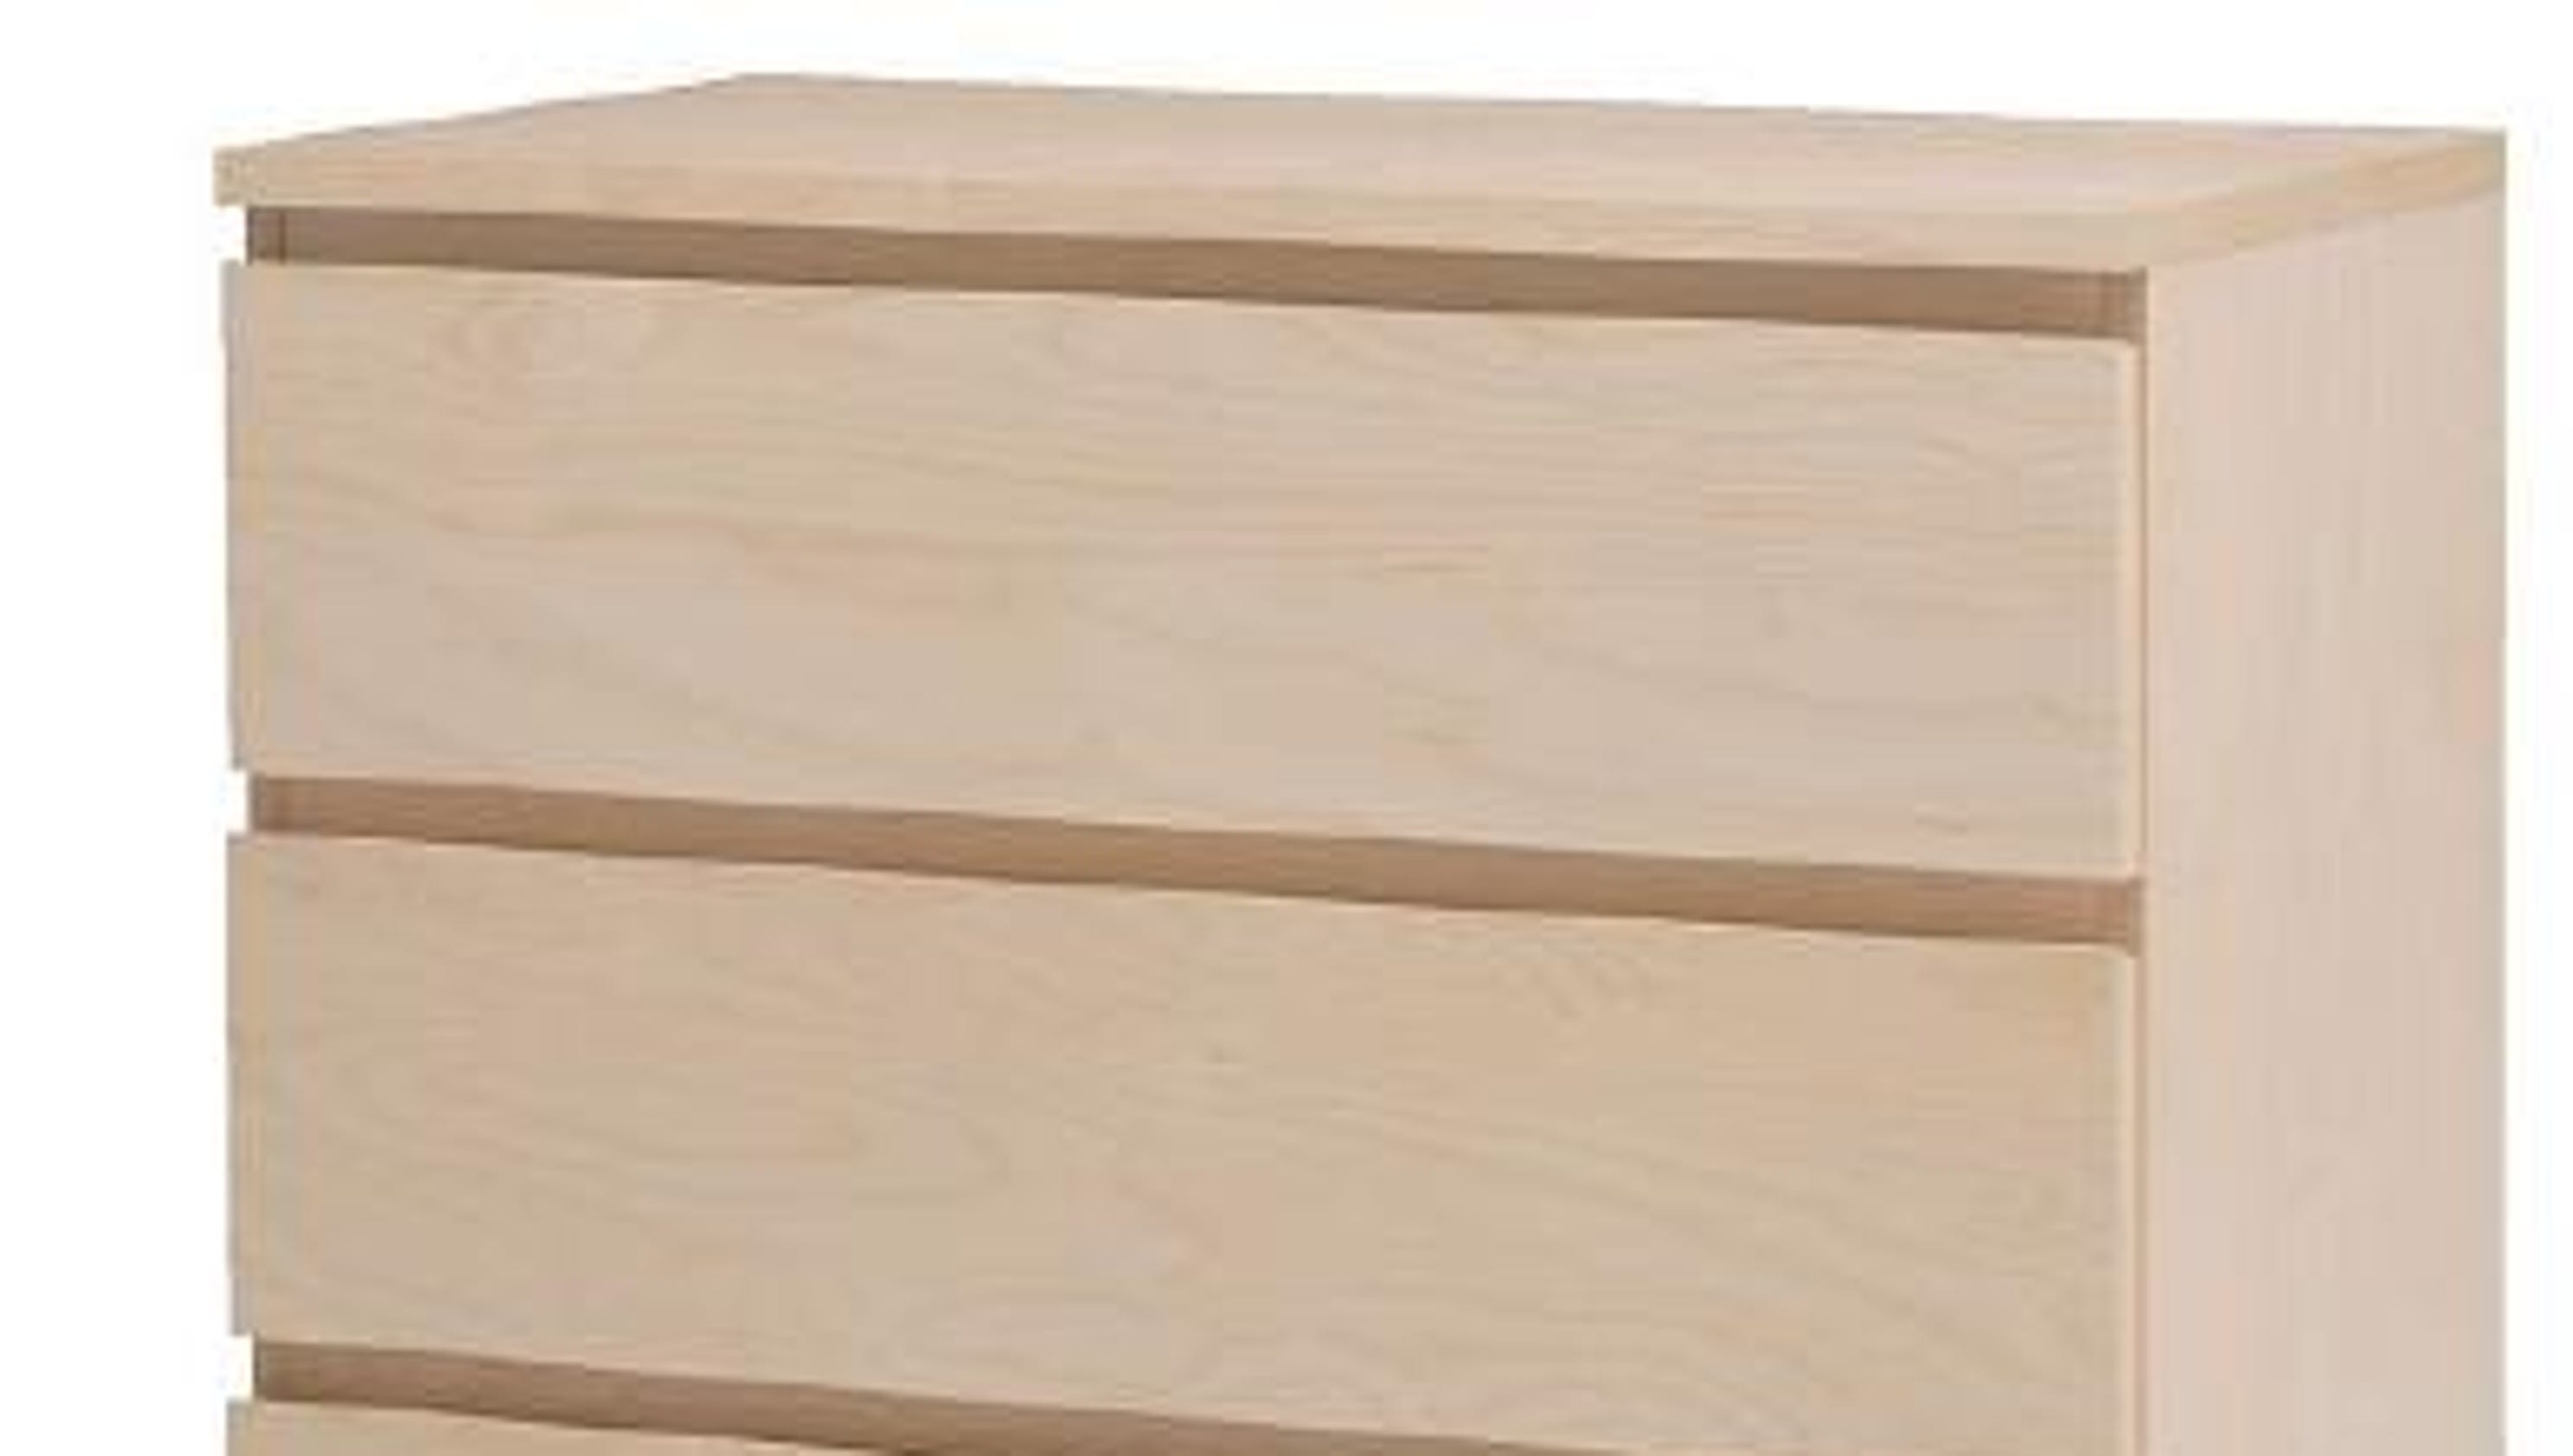 Toddler reportedly be es 8th child killed by recalled IKEA dresser